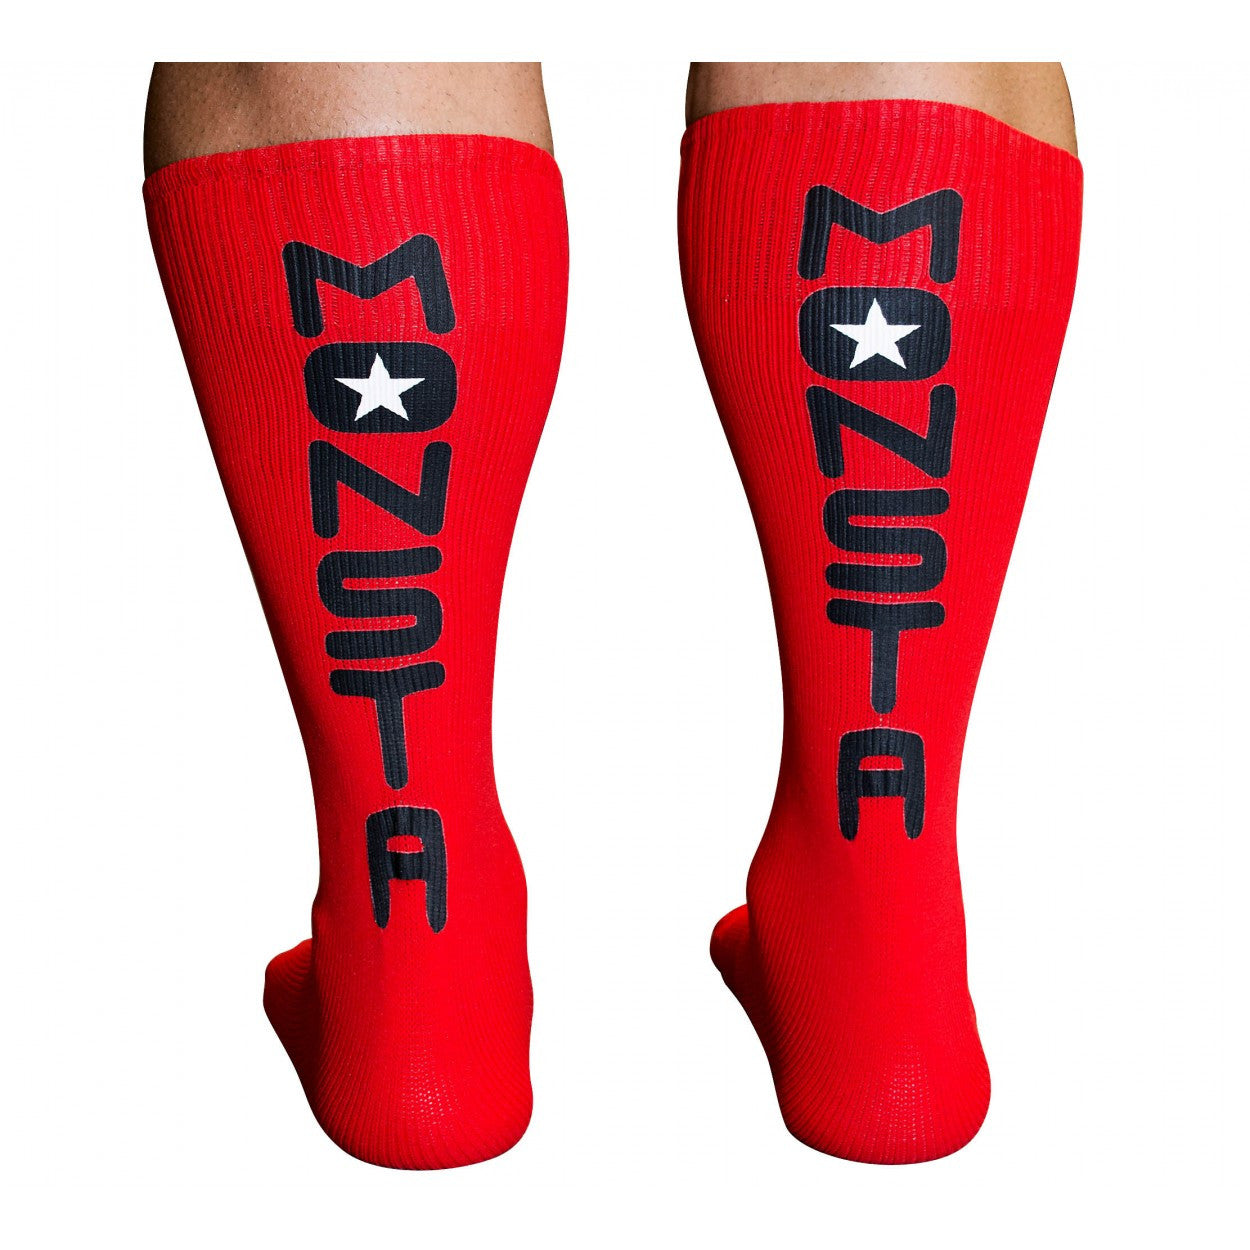 Socks: Monsta Mid Calf - Monsta Clothing Australia